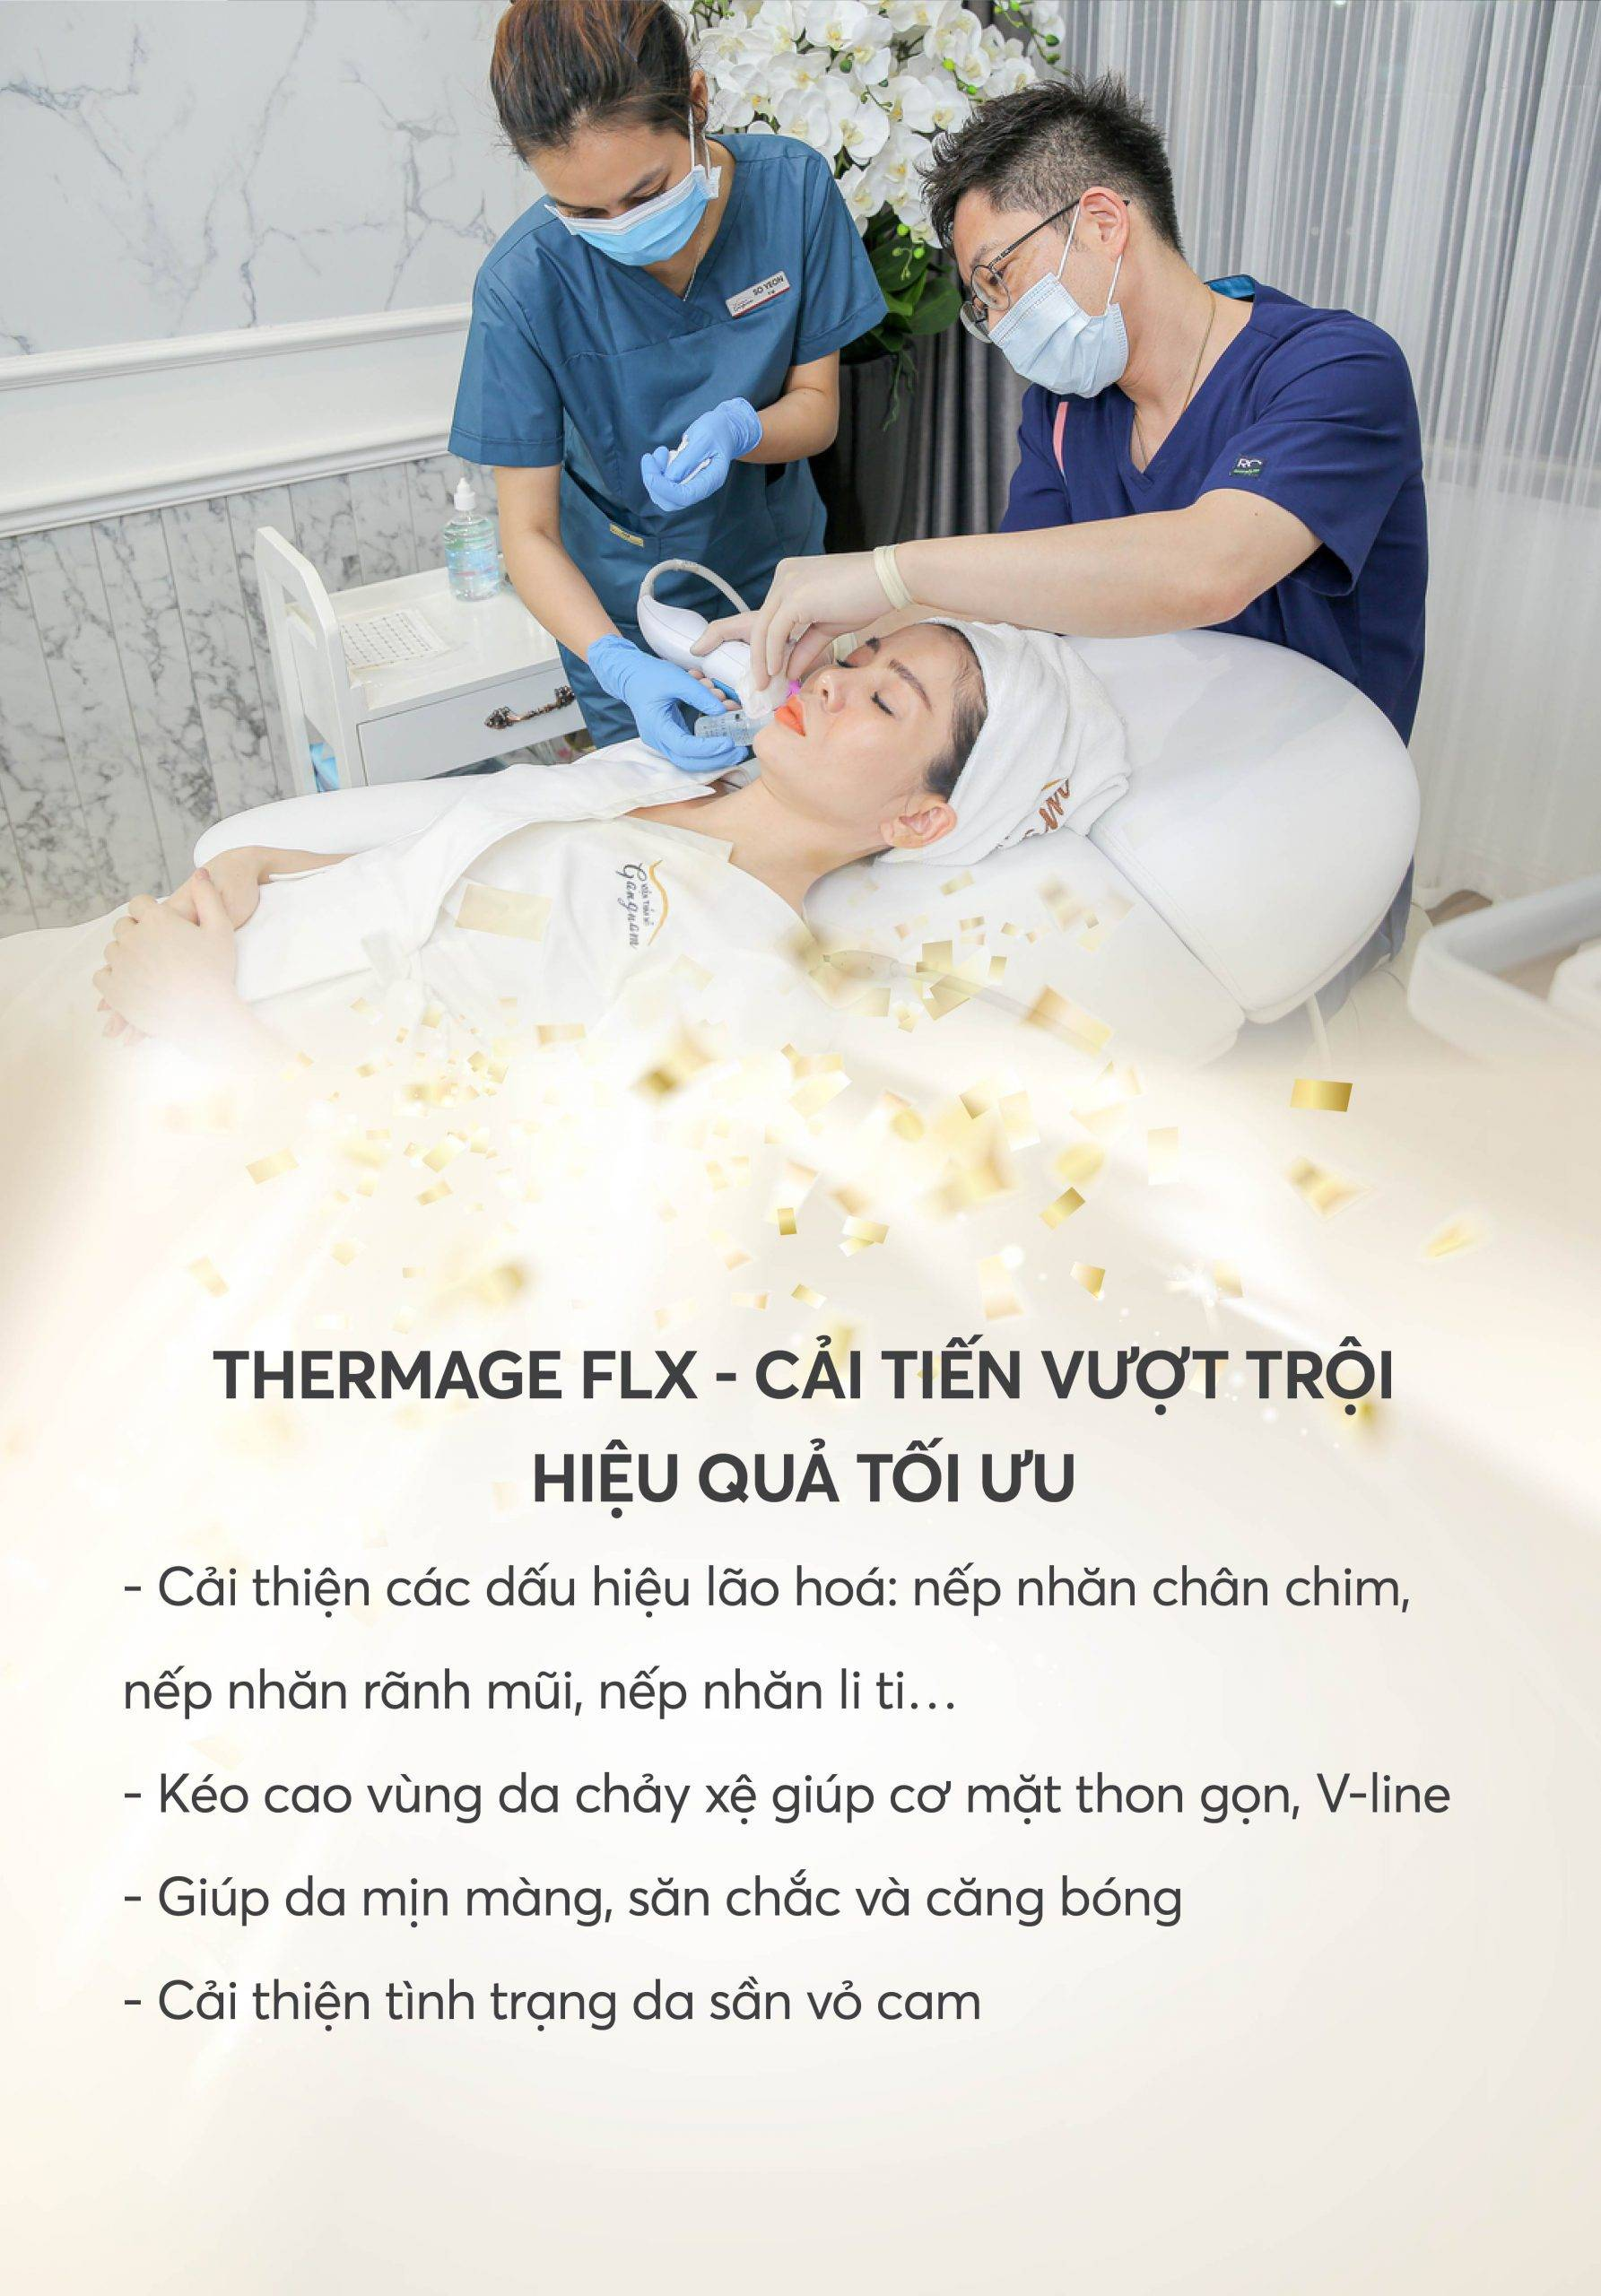 mobile-thermage-flx-1